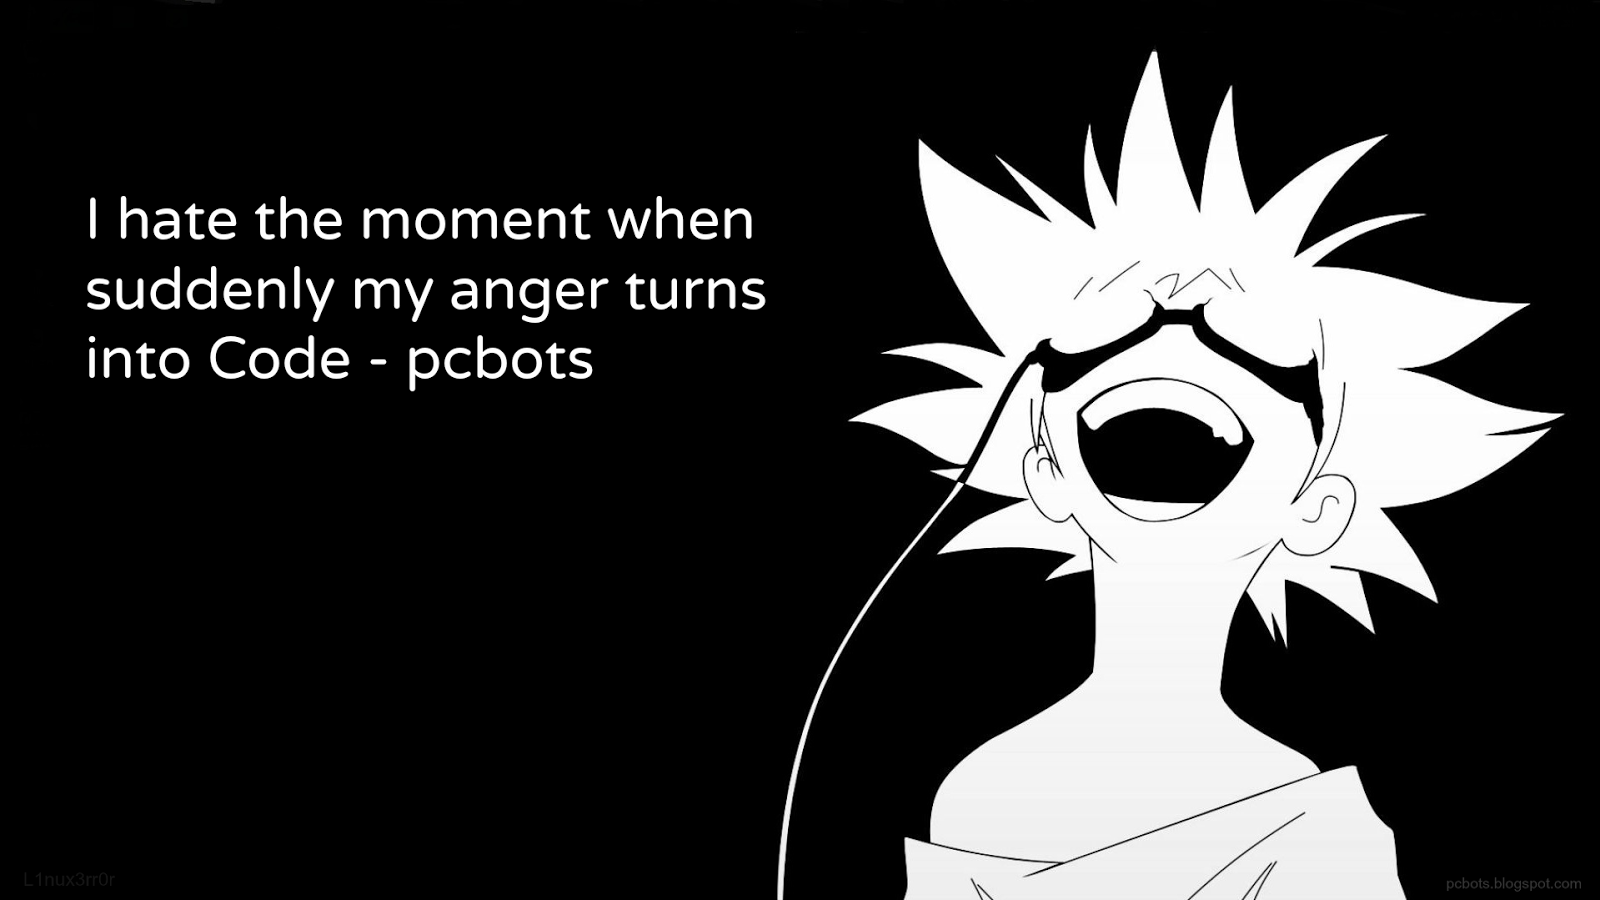 the moment when suddenly my anger turns into code pcbots Wallpaper 1600x900